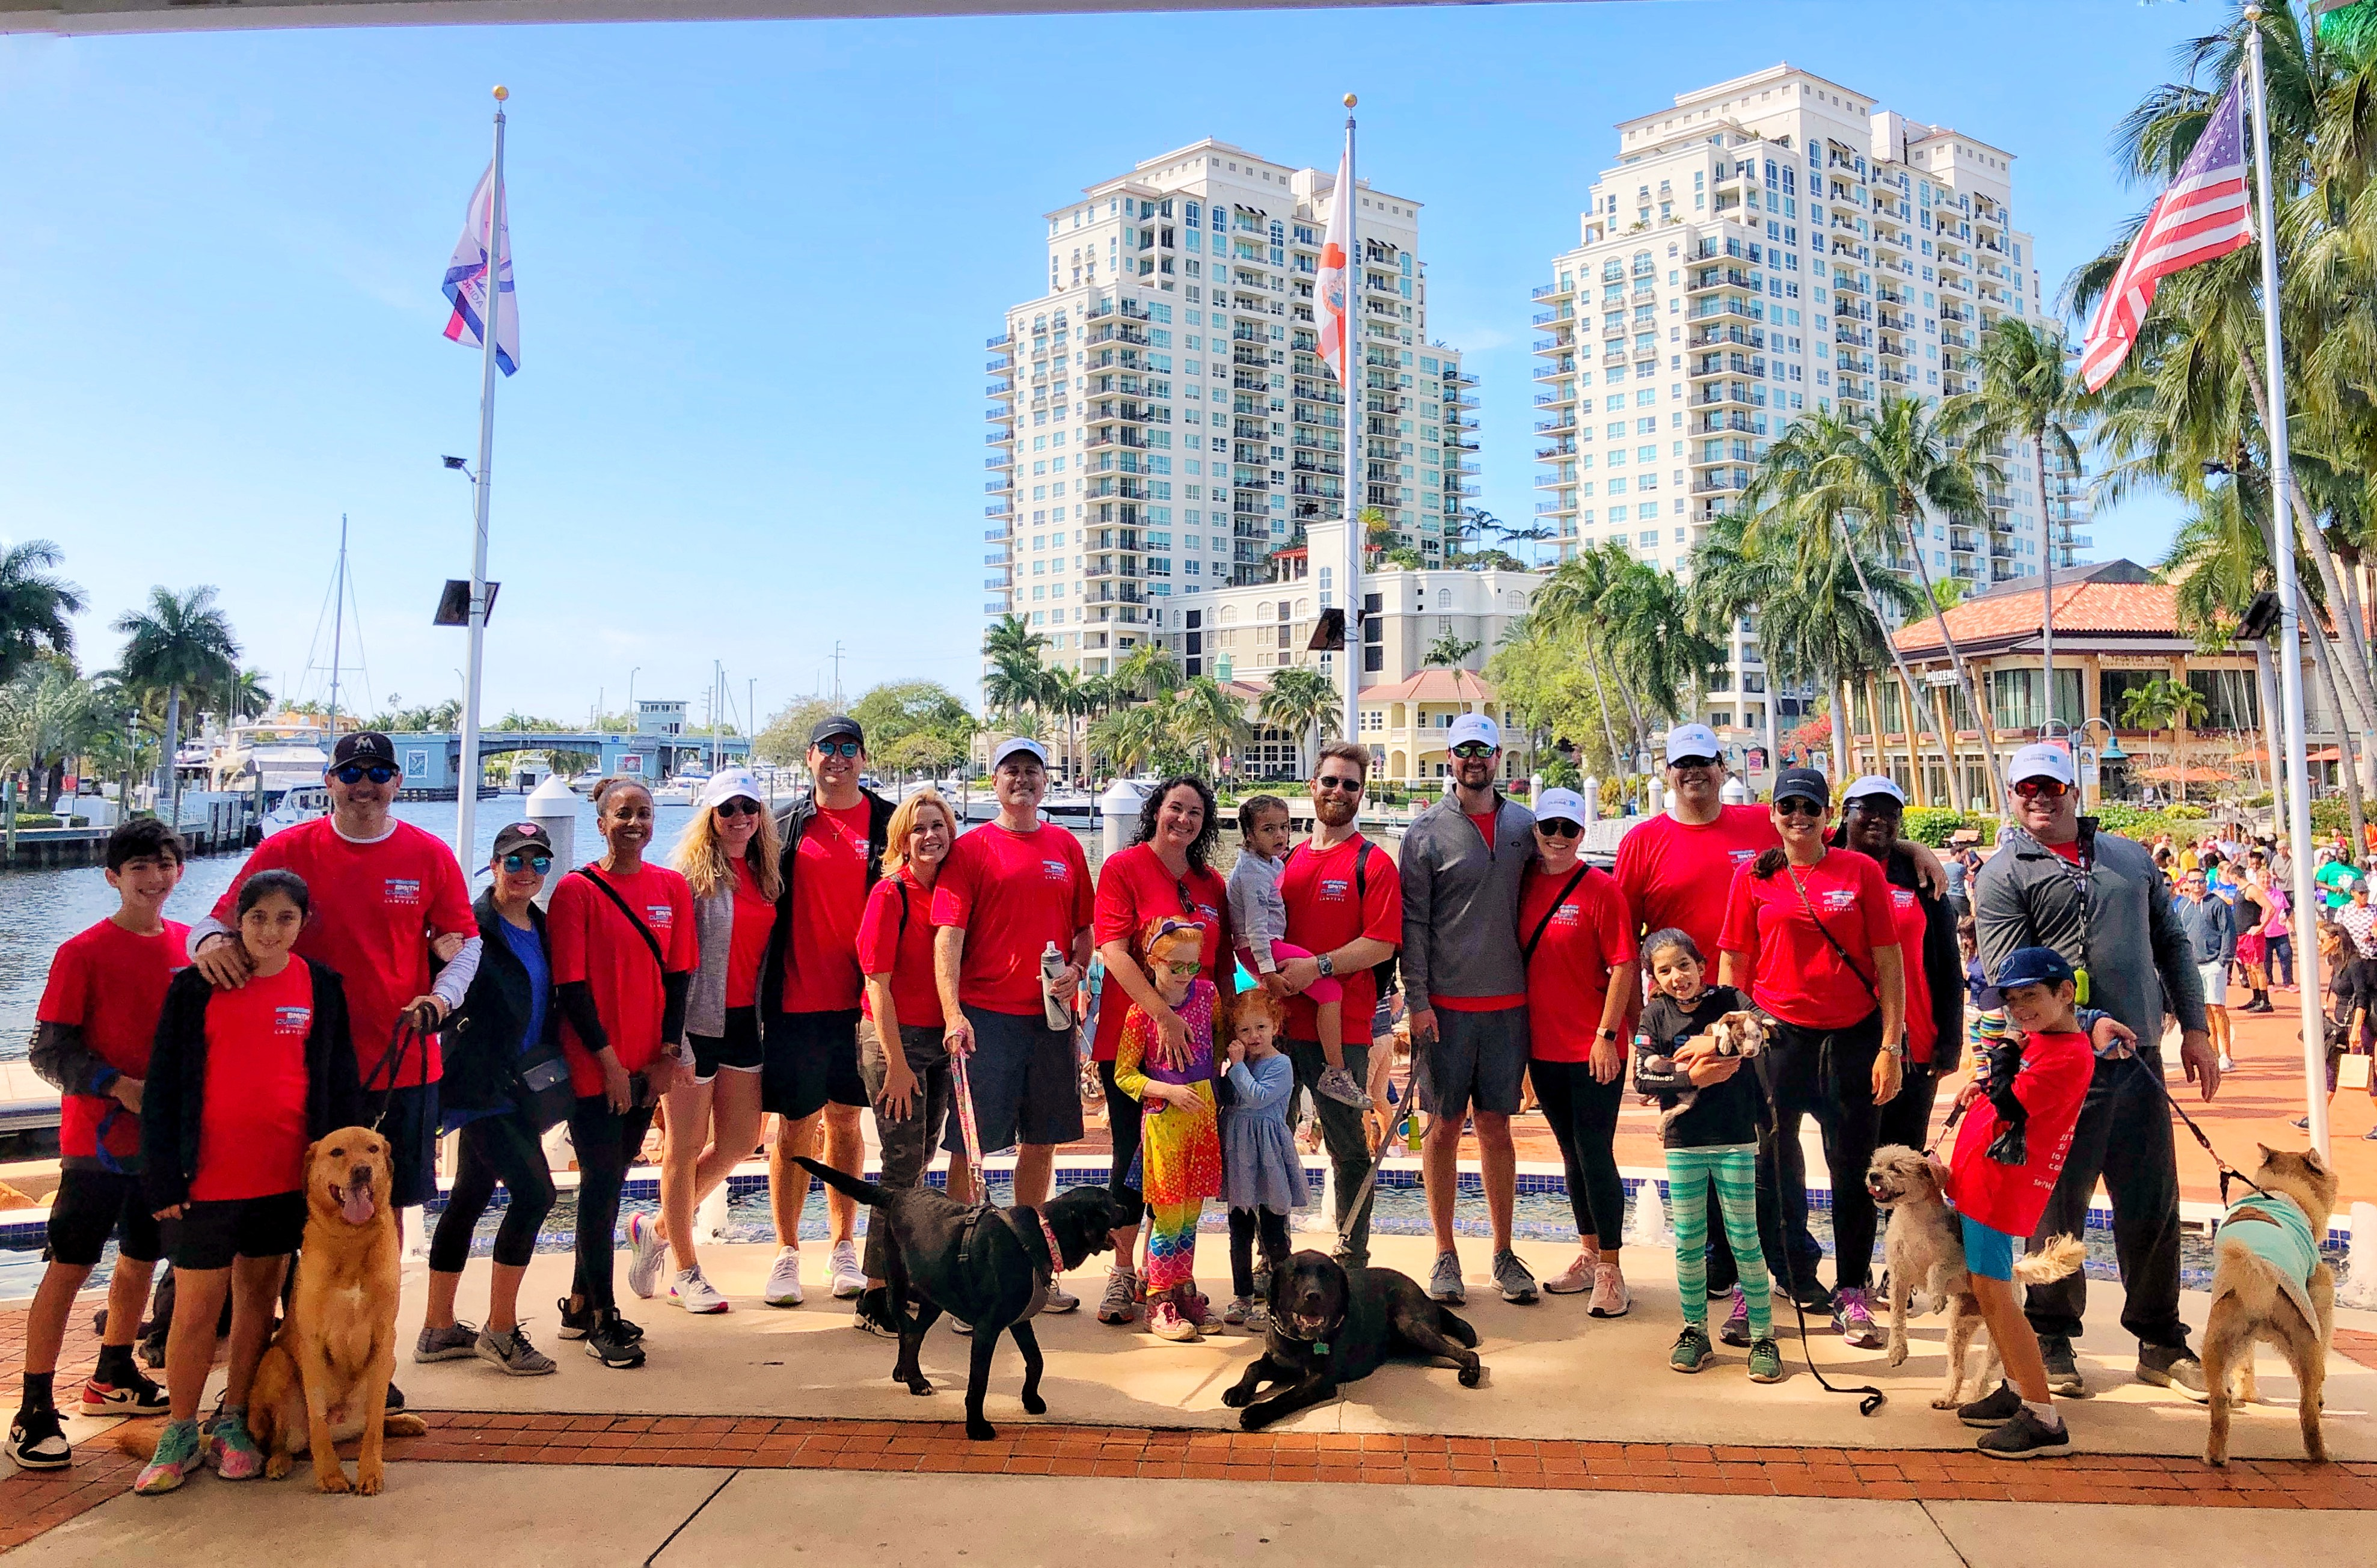 Smith Currie & Hancock's Fort Lauderdale office at the Humane Society of Broward County's 30th annual Walk for the Animals